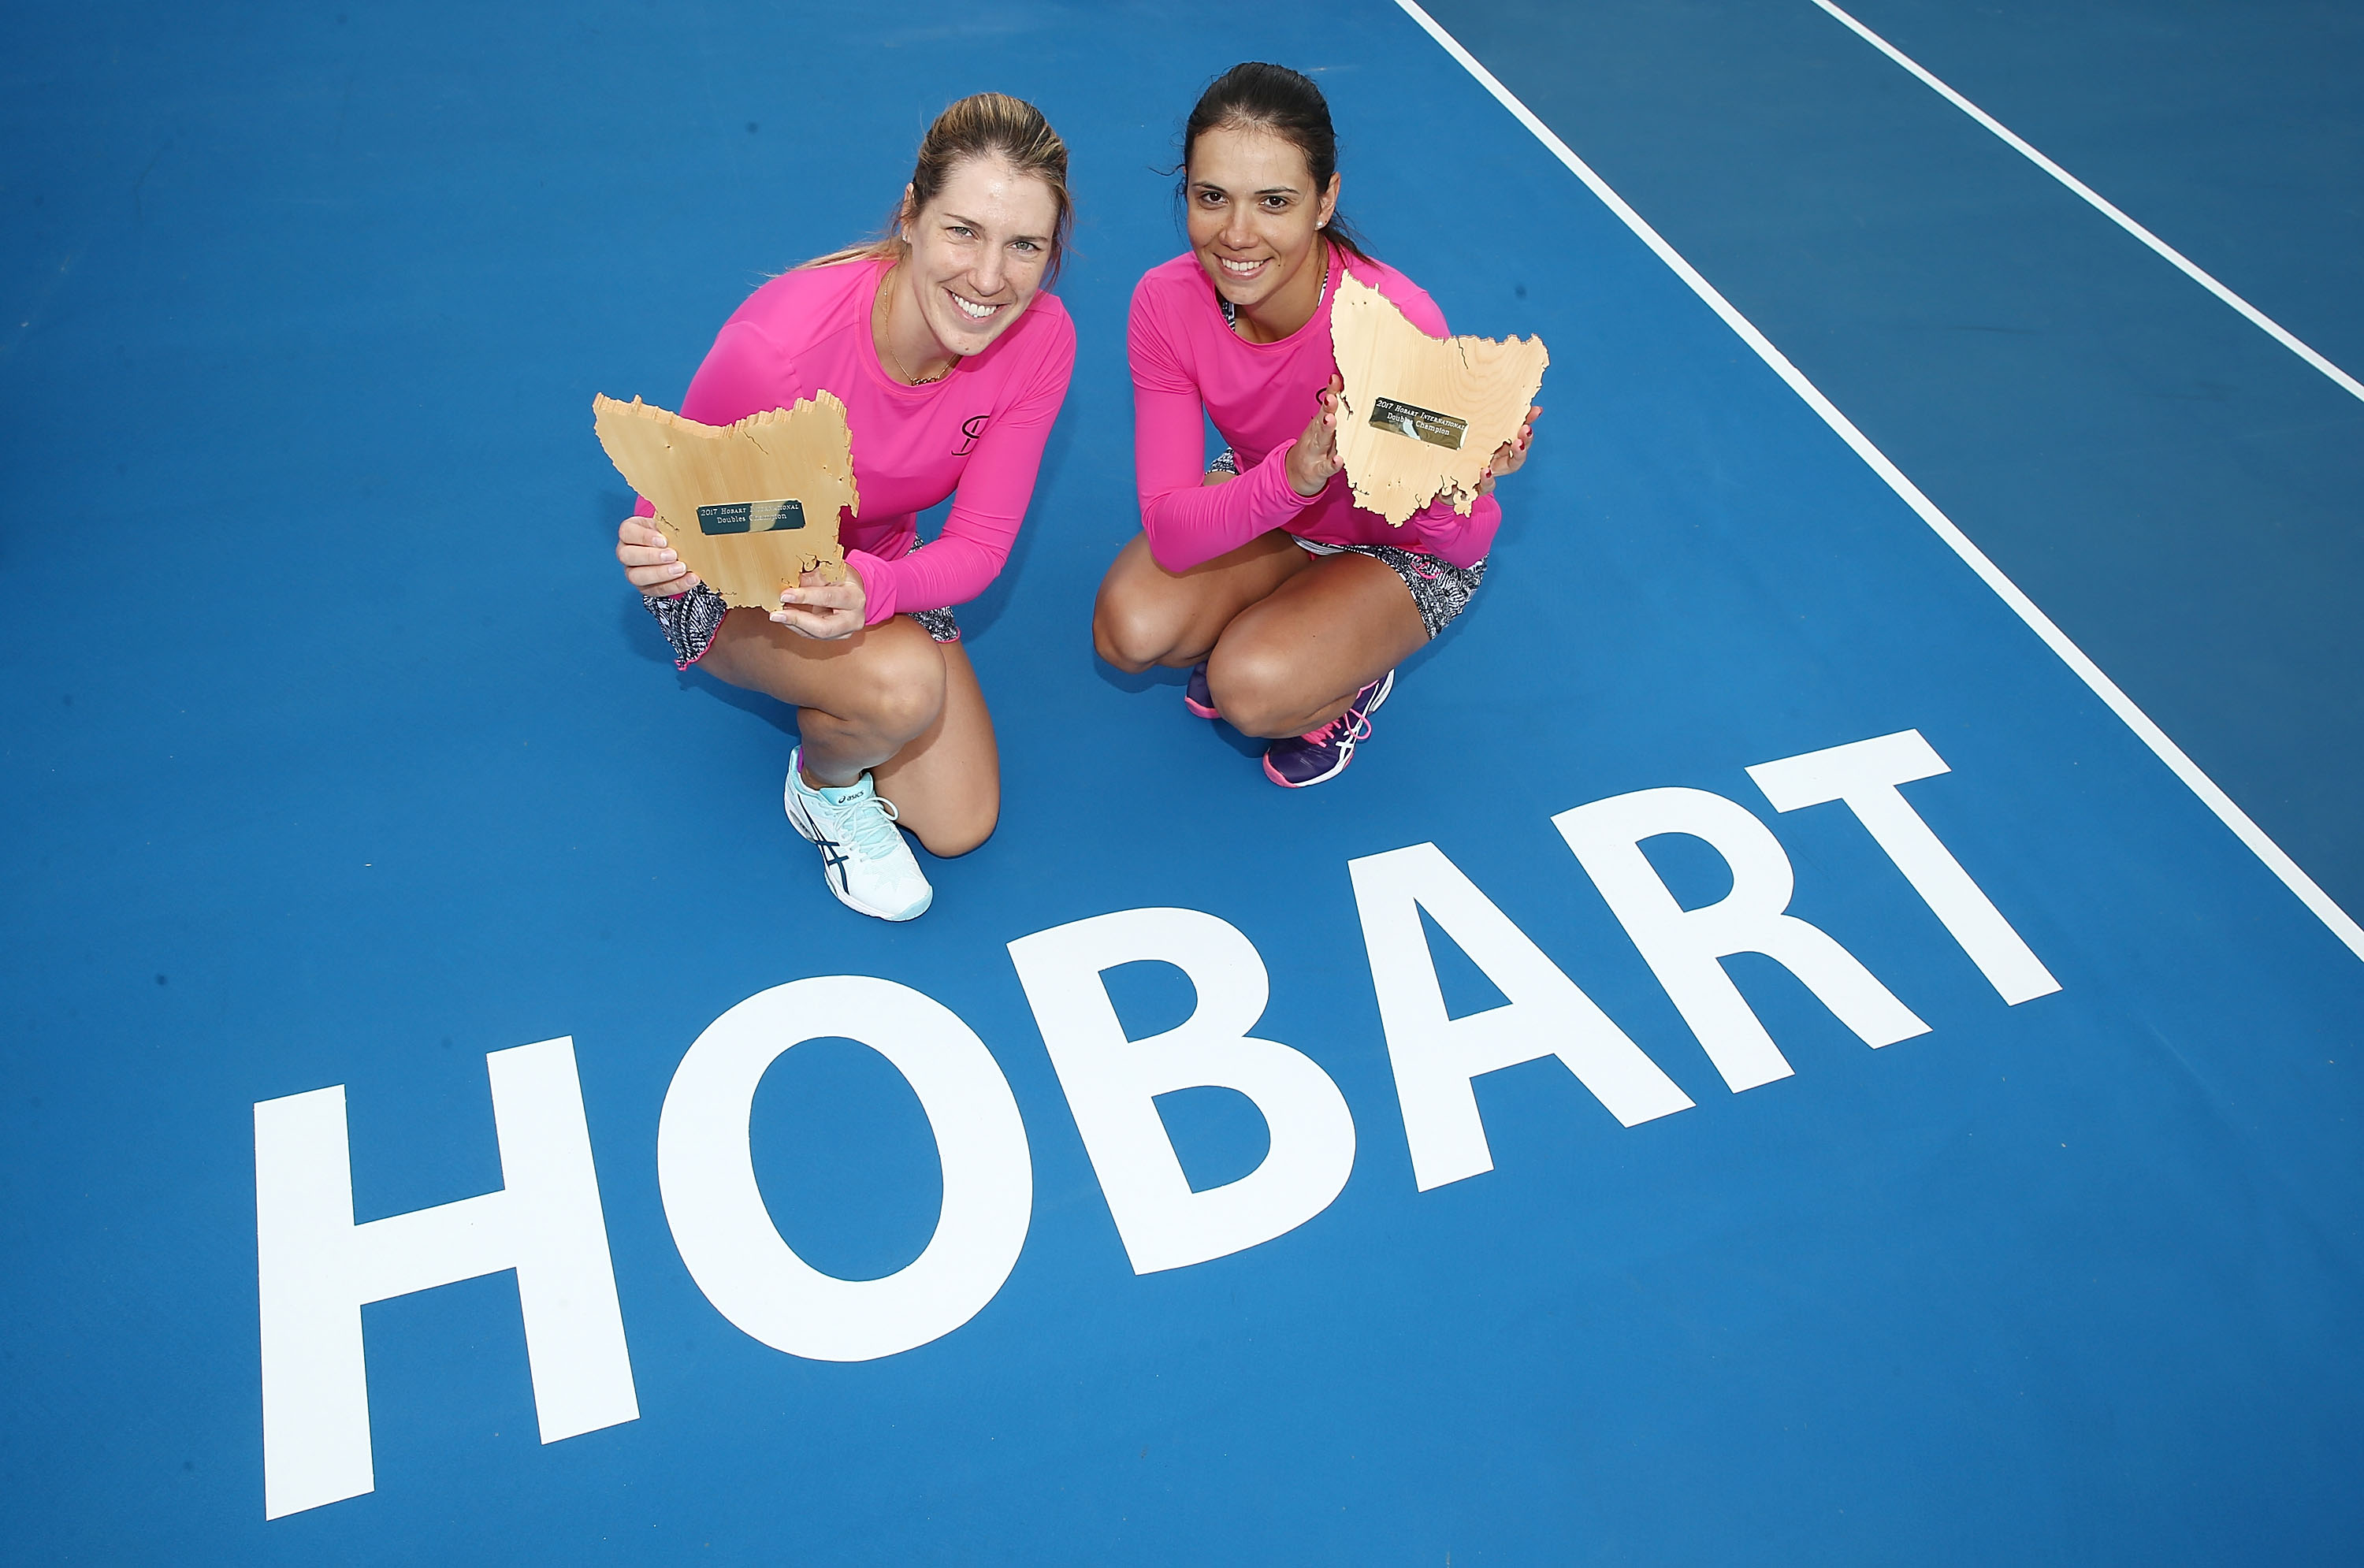 VICTORS: Romanian world No.64 Raluca Olaru and Ukrainian world No.58 Olga Savchuk pose with their champions trophies; Getty Images